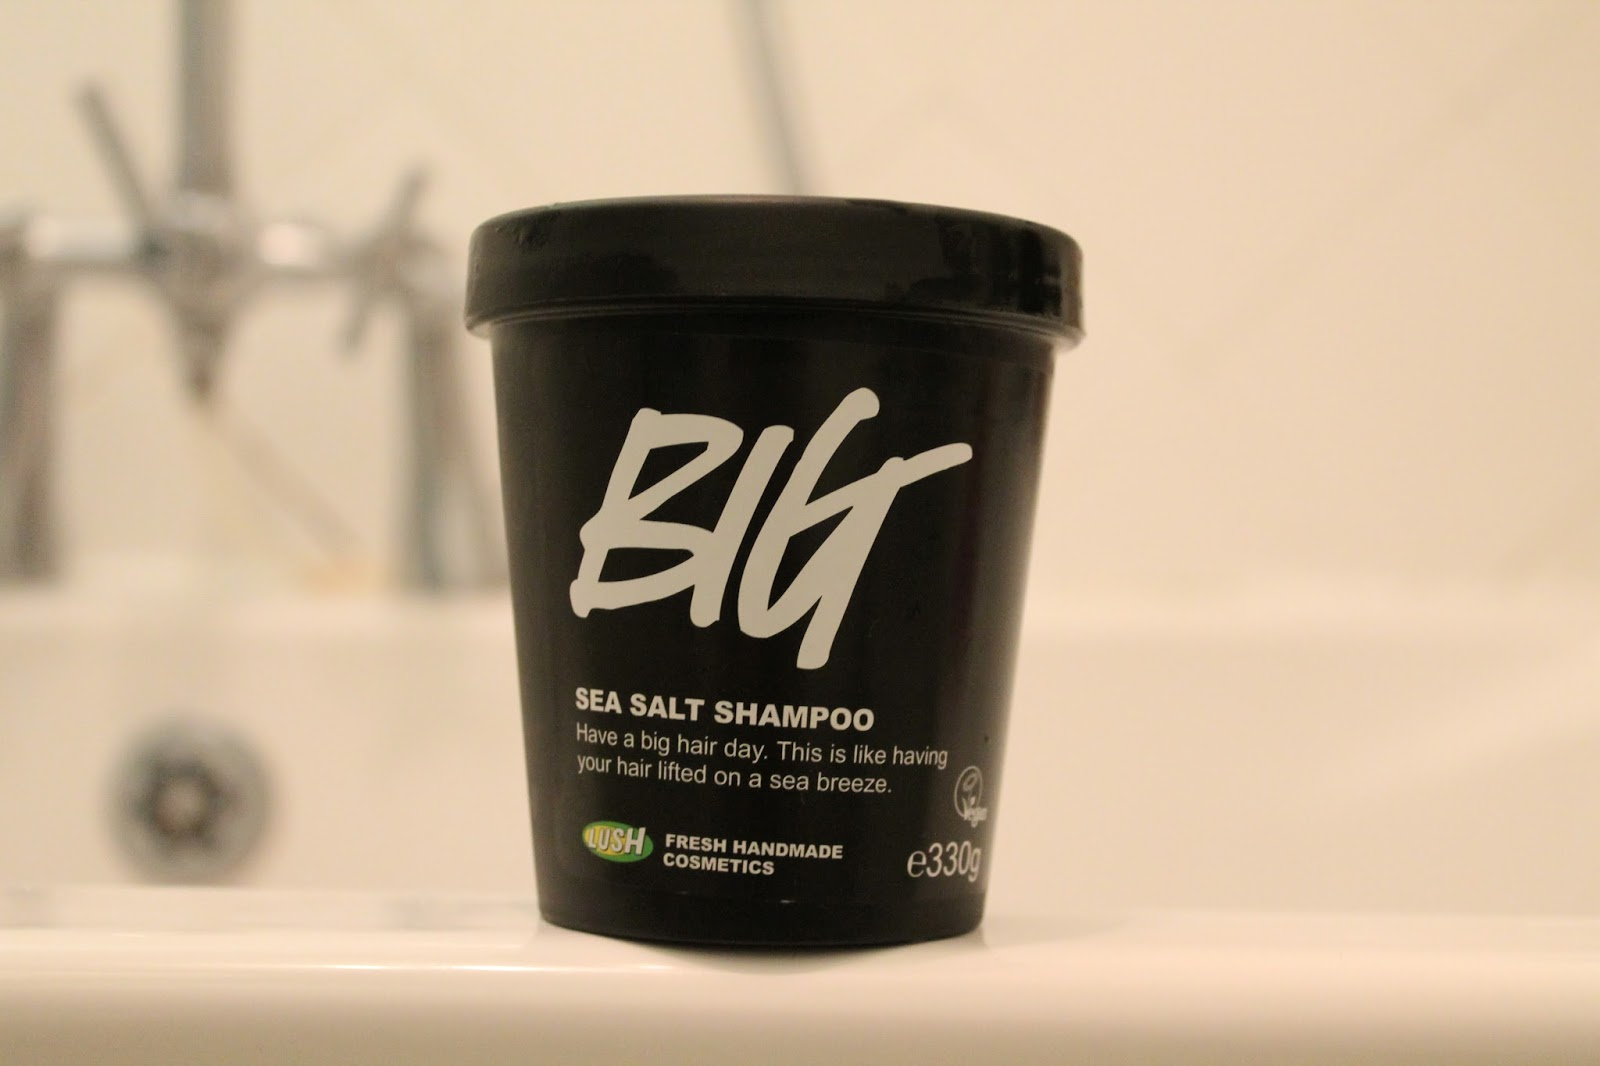 BIG Sea Salt Shampoo - Lush Review